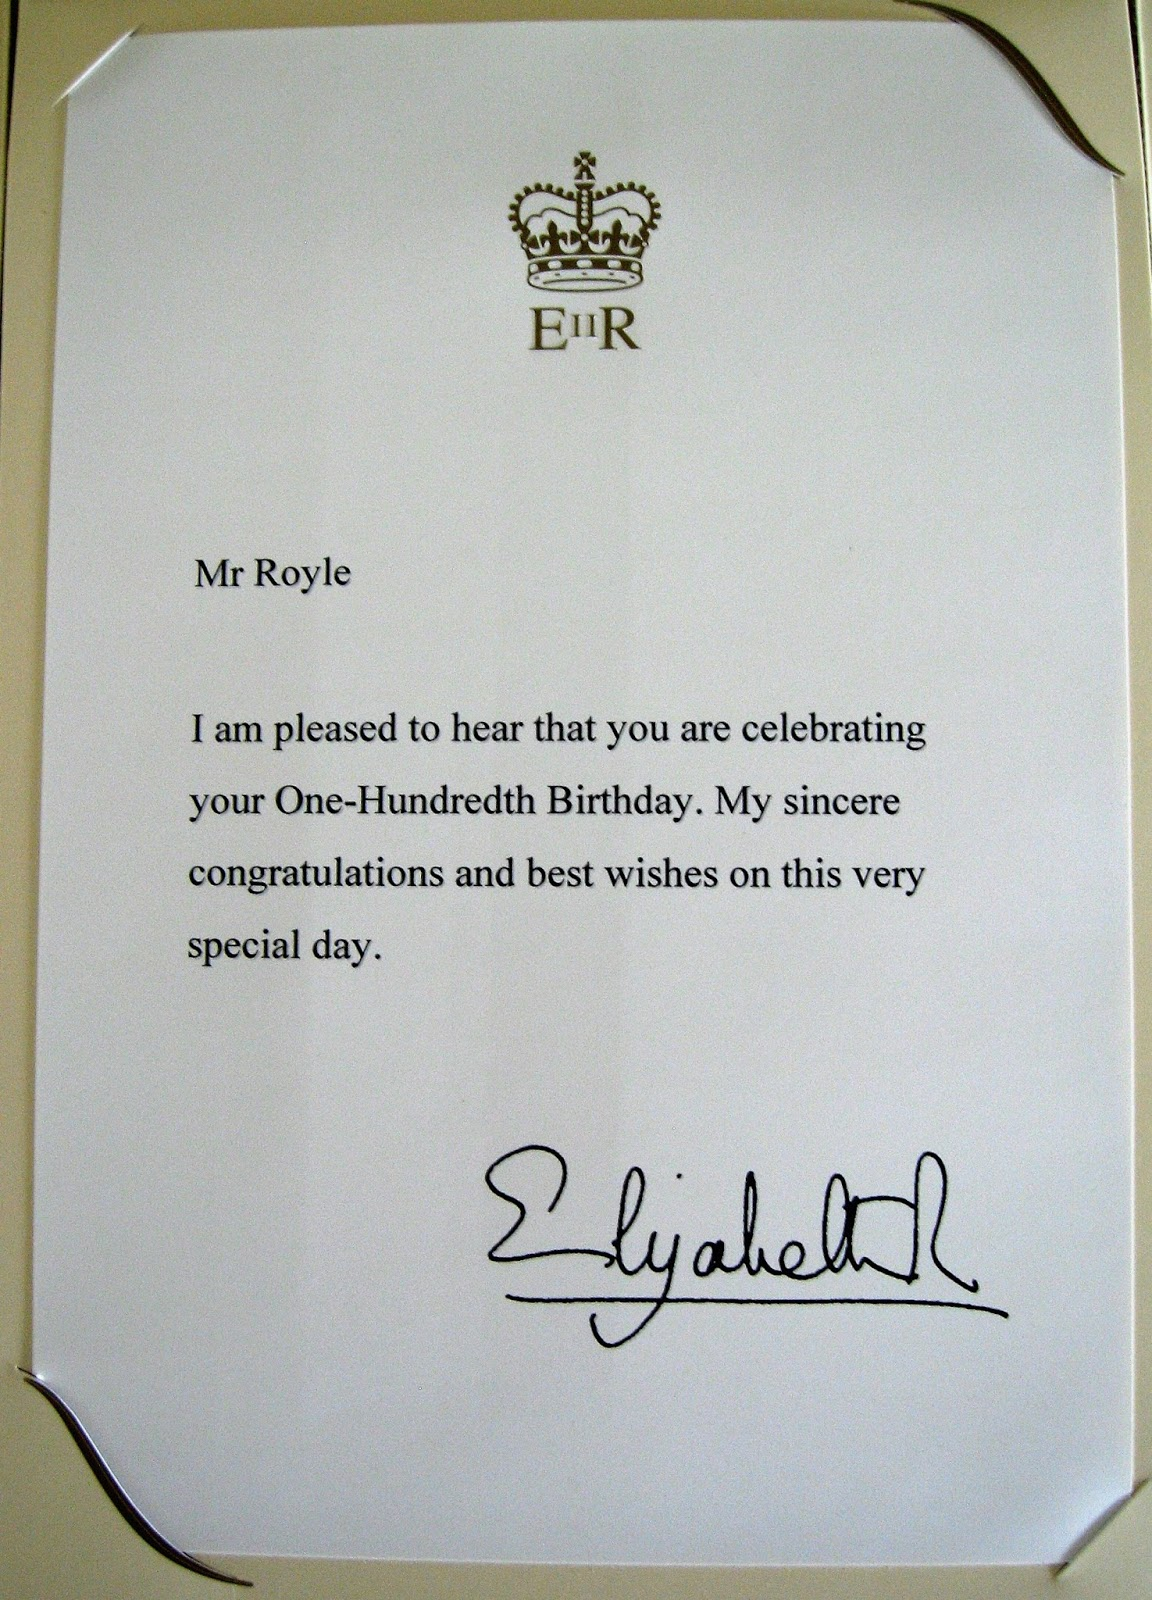 paul royle and his congratulatory letter from her majesty queen elizabeth ii celebrating his 100th birthday